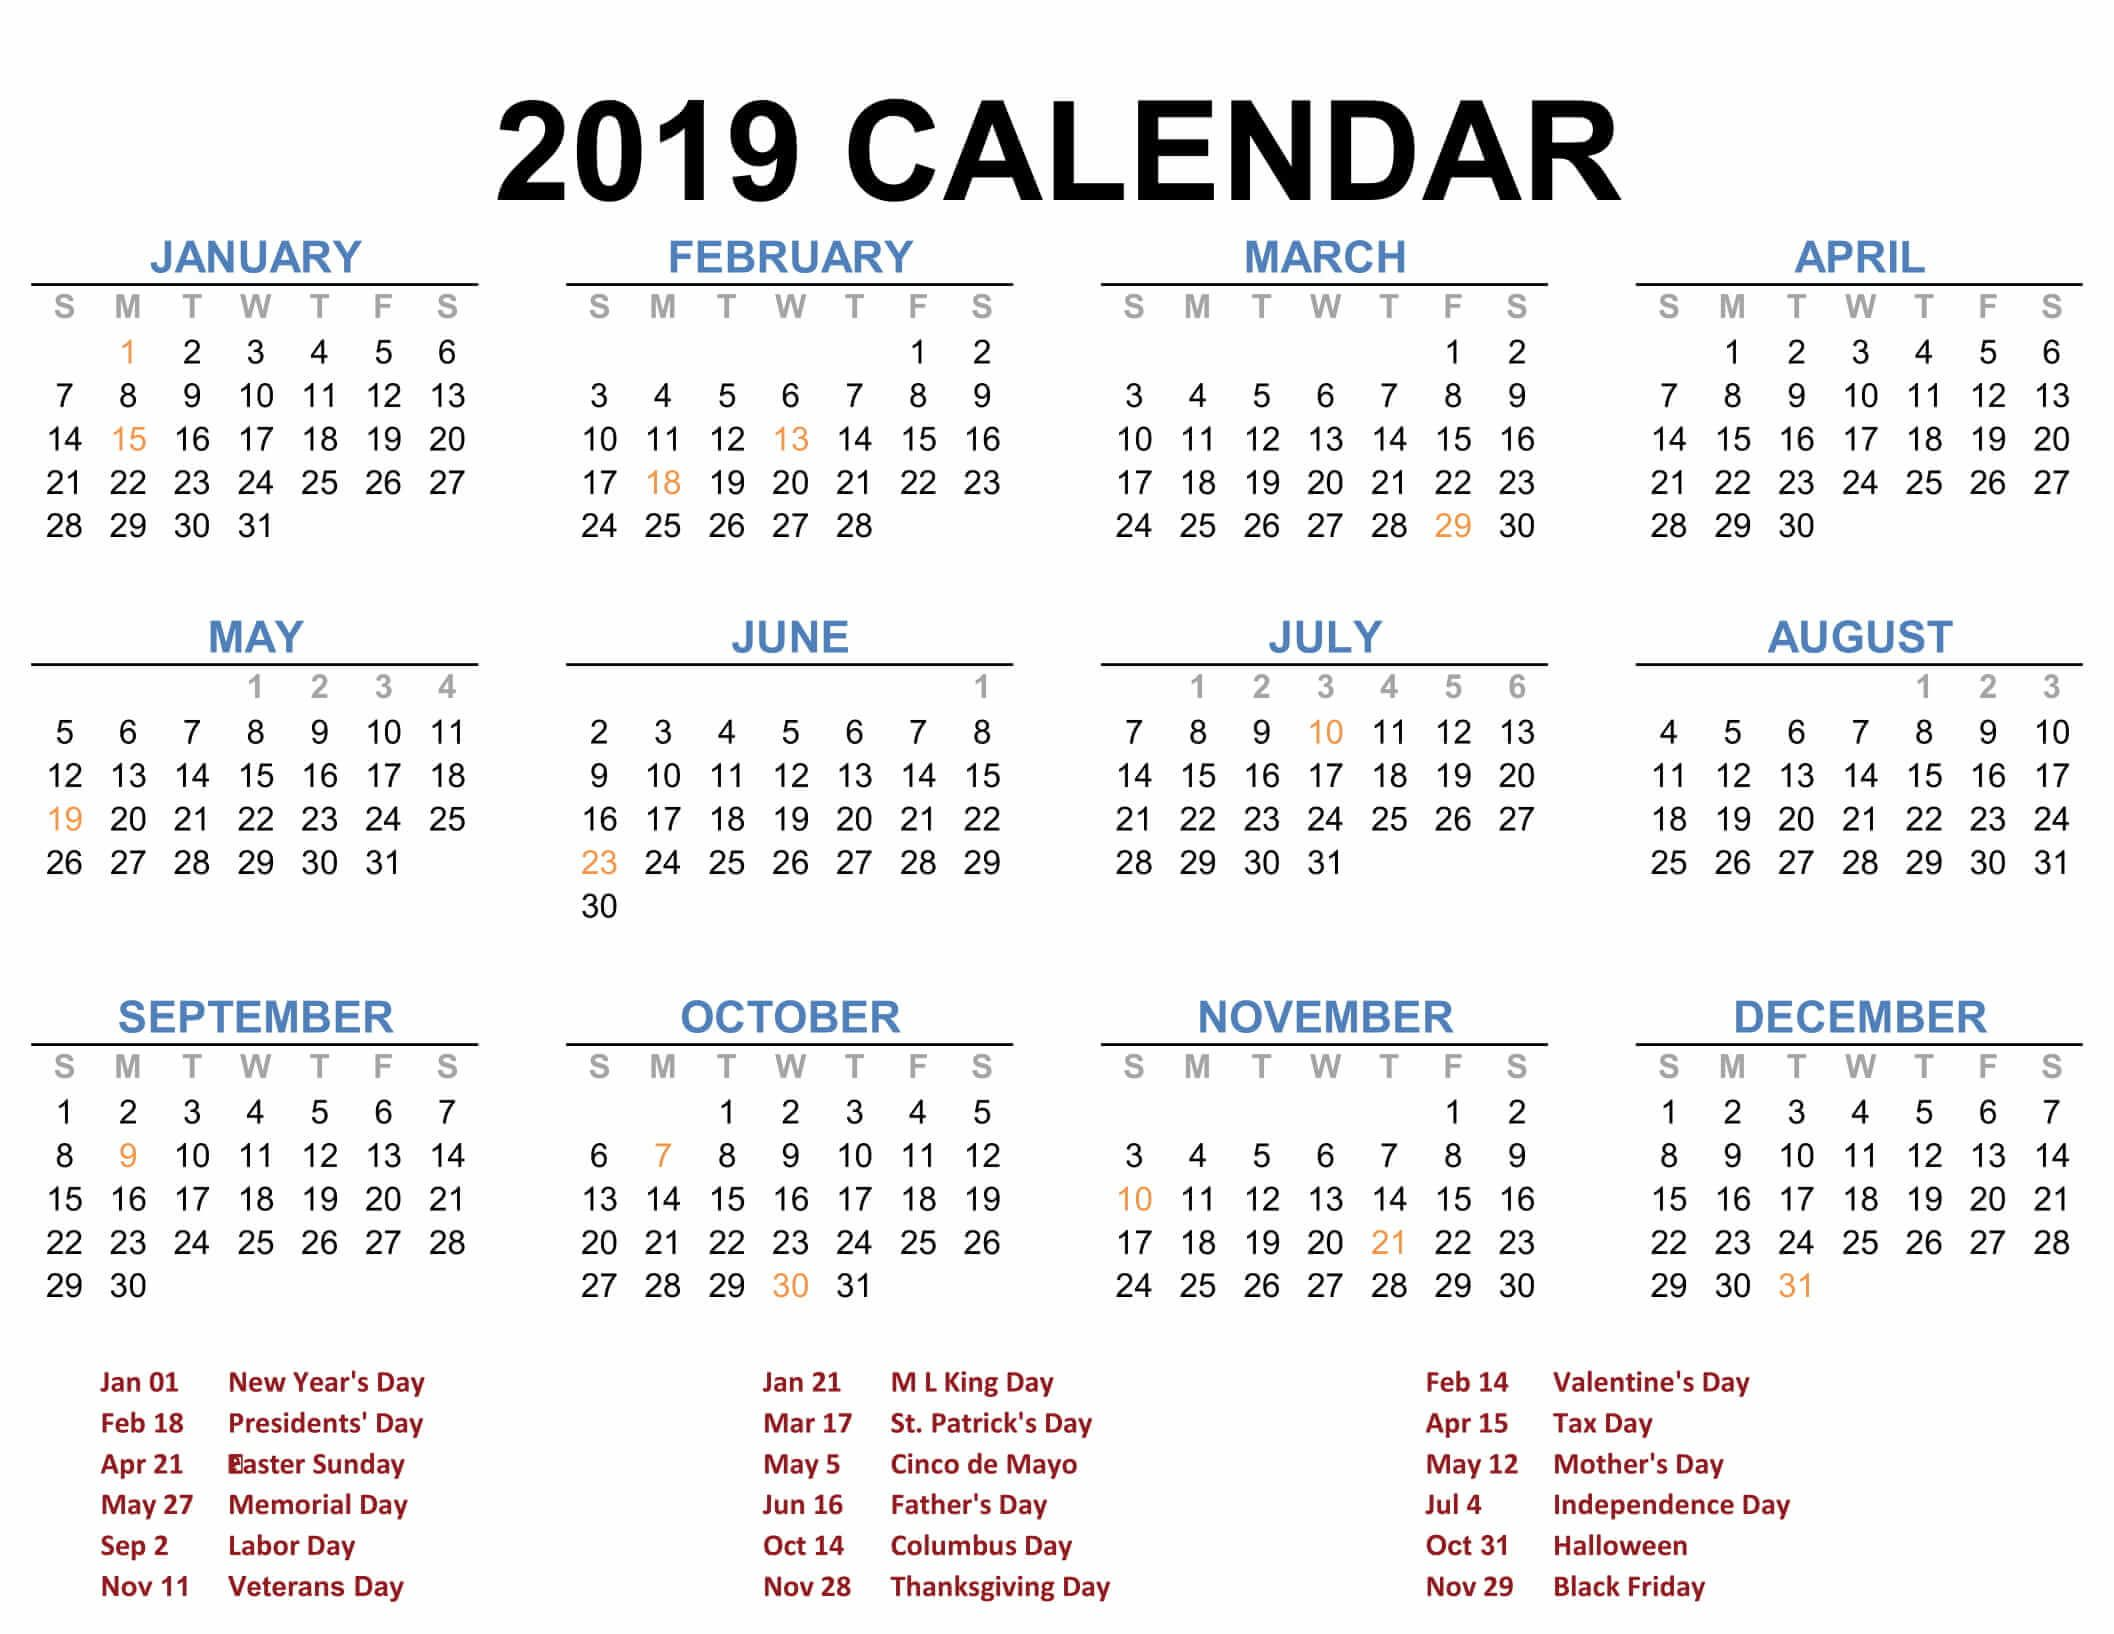 2019 Calendar Template Pdf Word Excel Free Download Printable